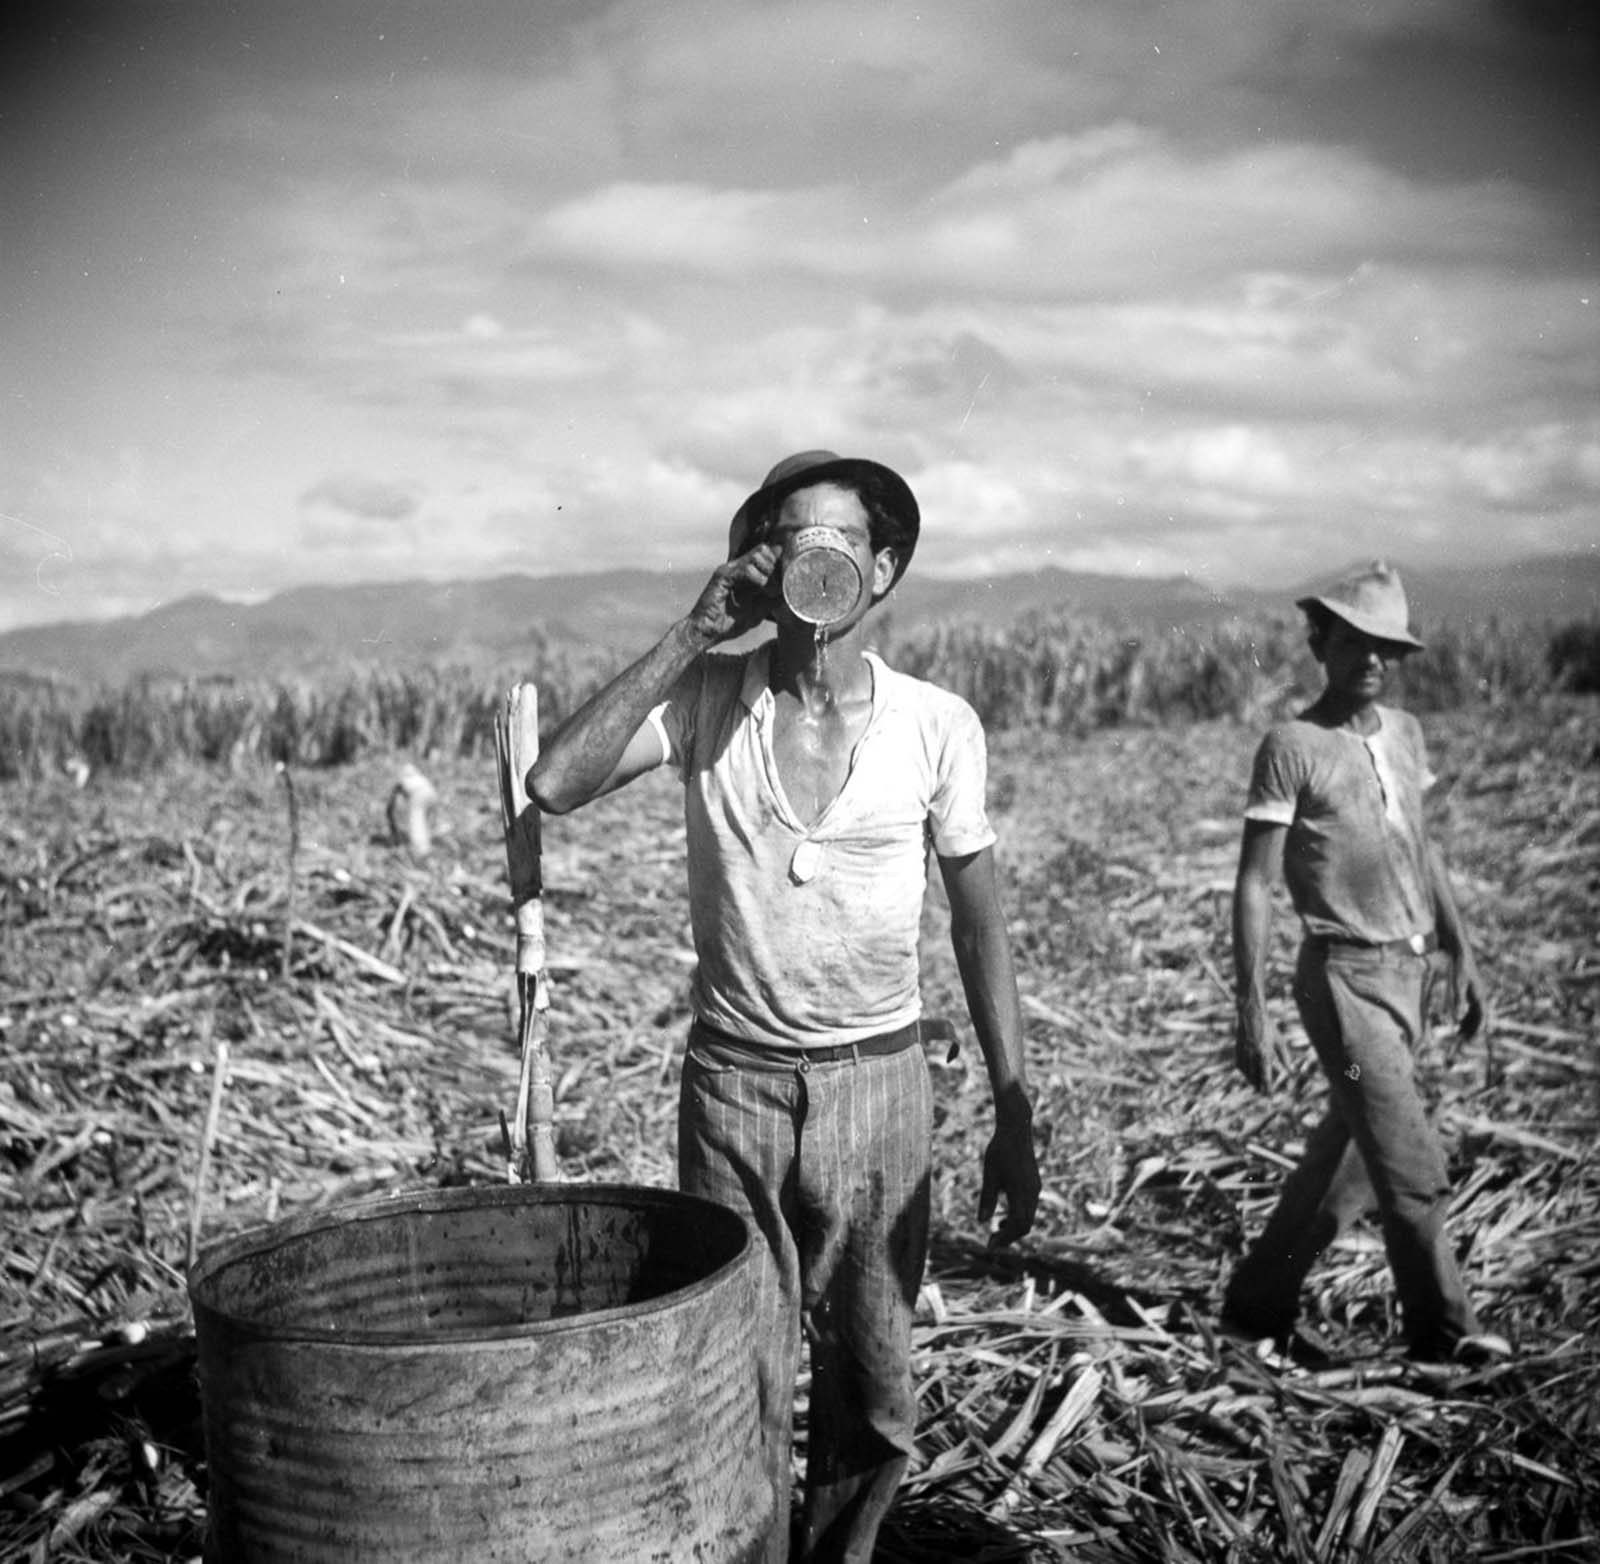 A worker on a sugar plantation takes a drink of water.